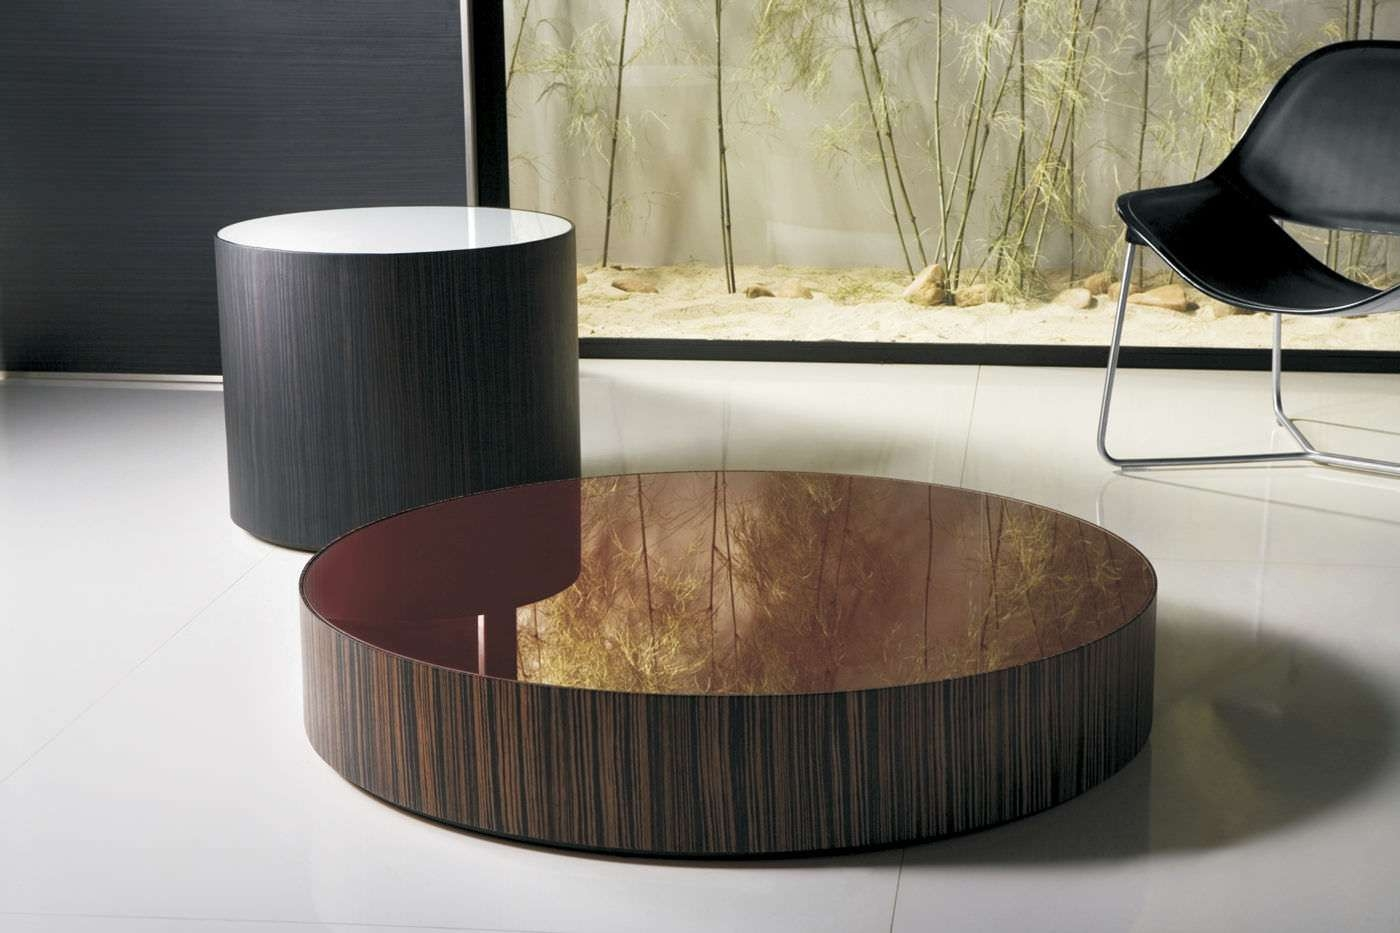 Most Recently Released Contemporary Coffee Table Regarding Elegant Decor Contemporary Coffee Table — Novalinea Bagni Interior (View 16 of 20)